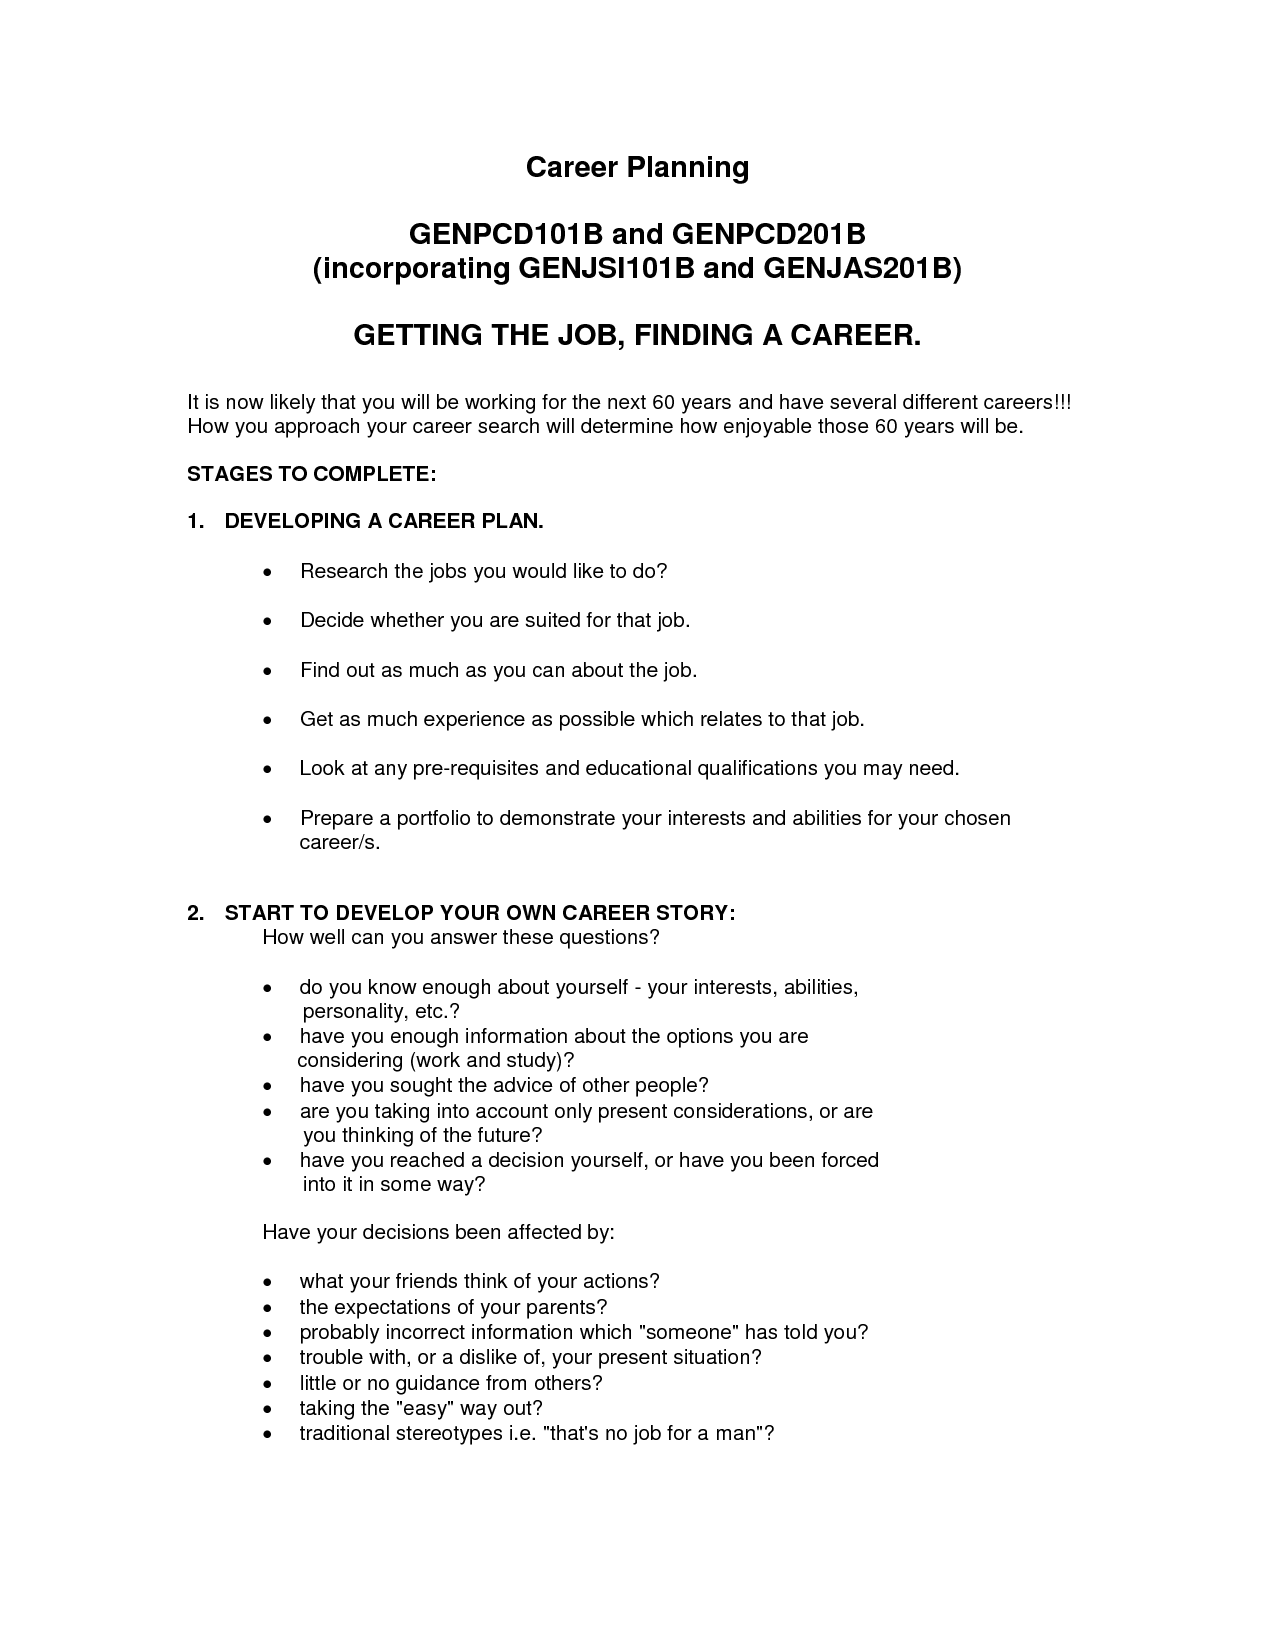 Cover Letter Sample It Cover Letter Sample Uva Career Center Job